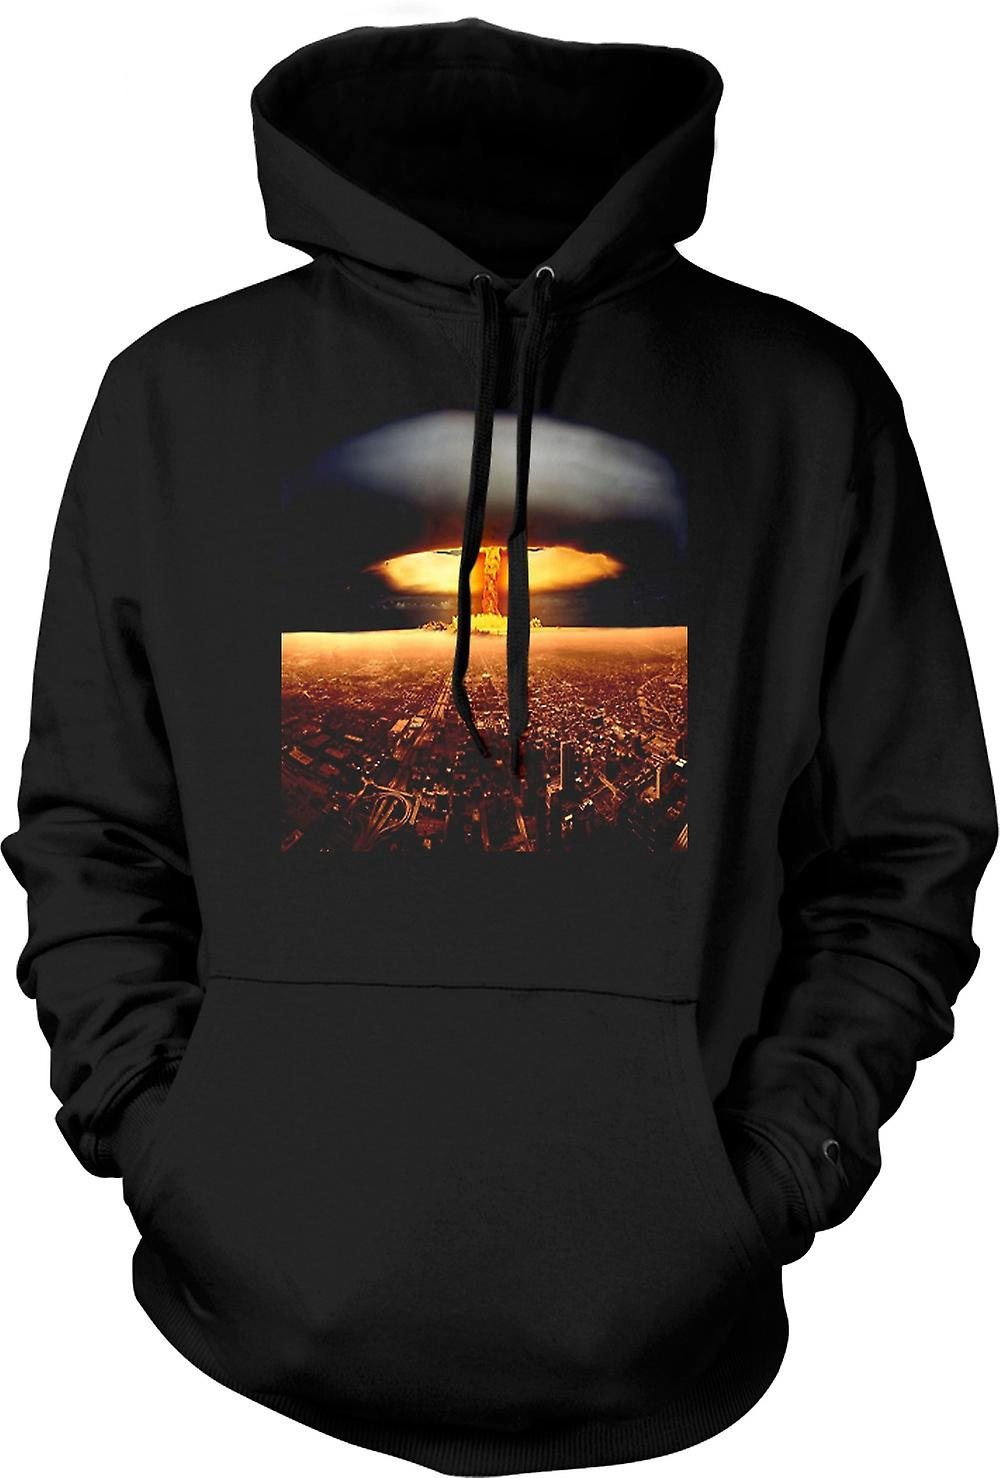 Mens Hoodie - Nuclear Mushroom Cloud On City - Cool